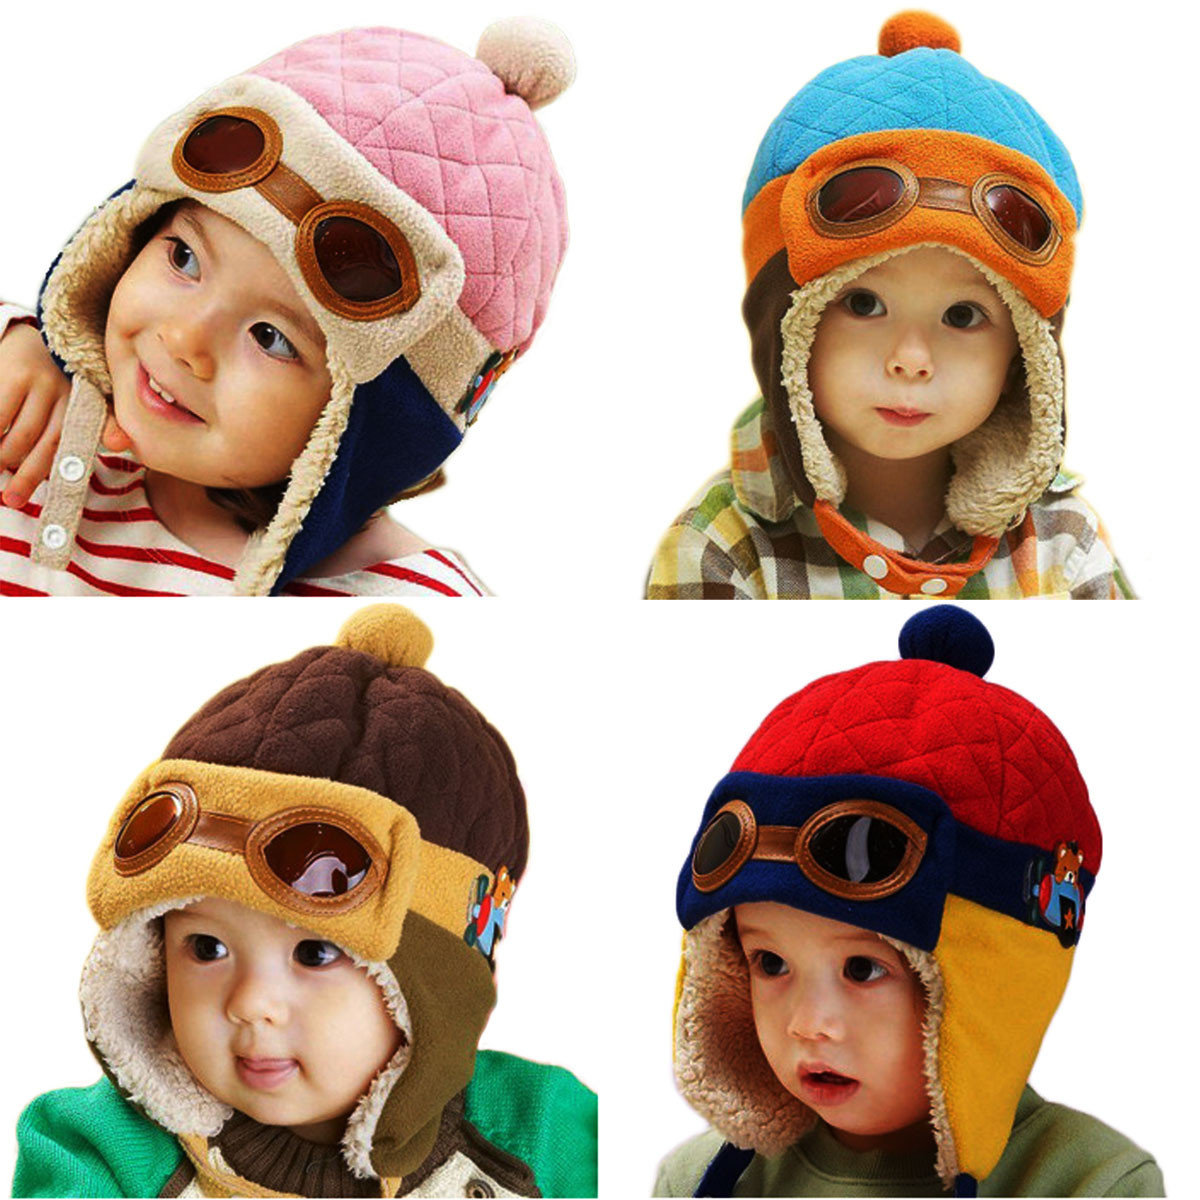 3e9f1ac02e0 winter unisex baby earmuff toddlers girl flight glasses boy kid pilot  aviator cap warm soft beanie earflap hat at Banggood sold out